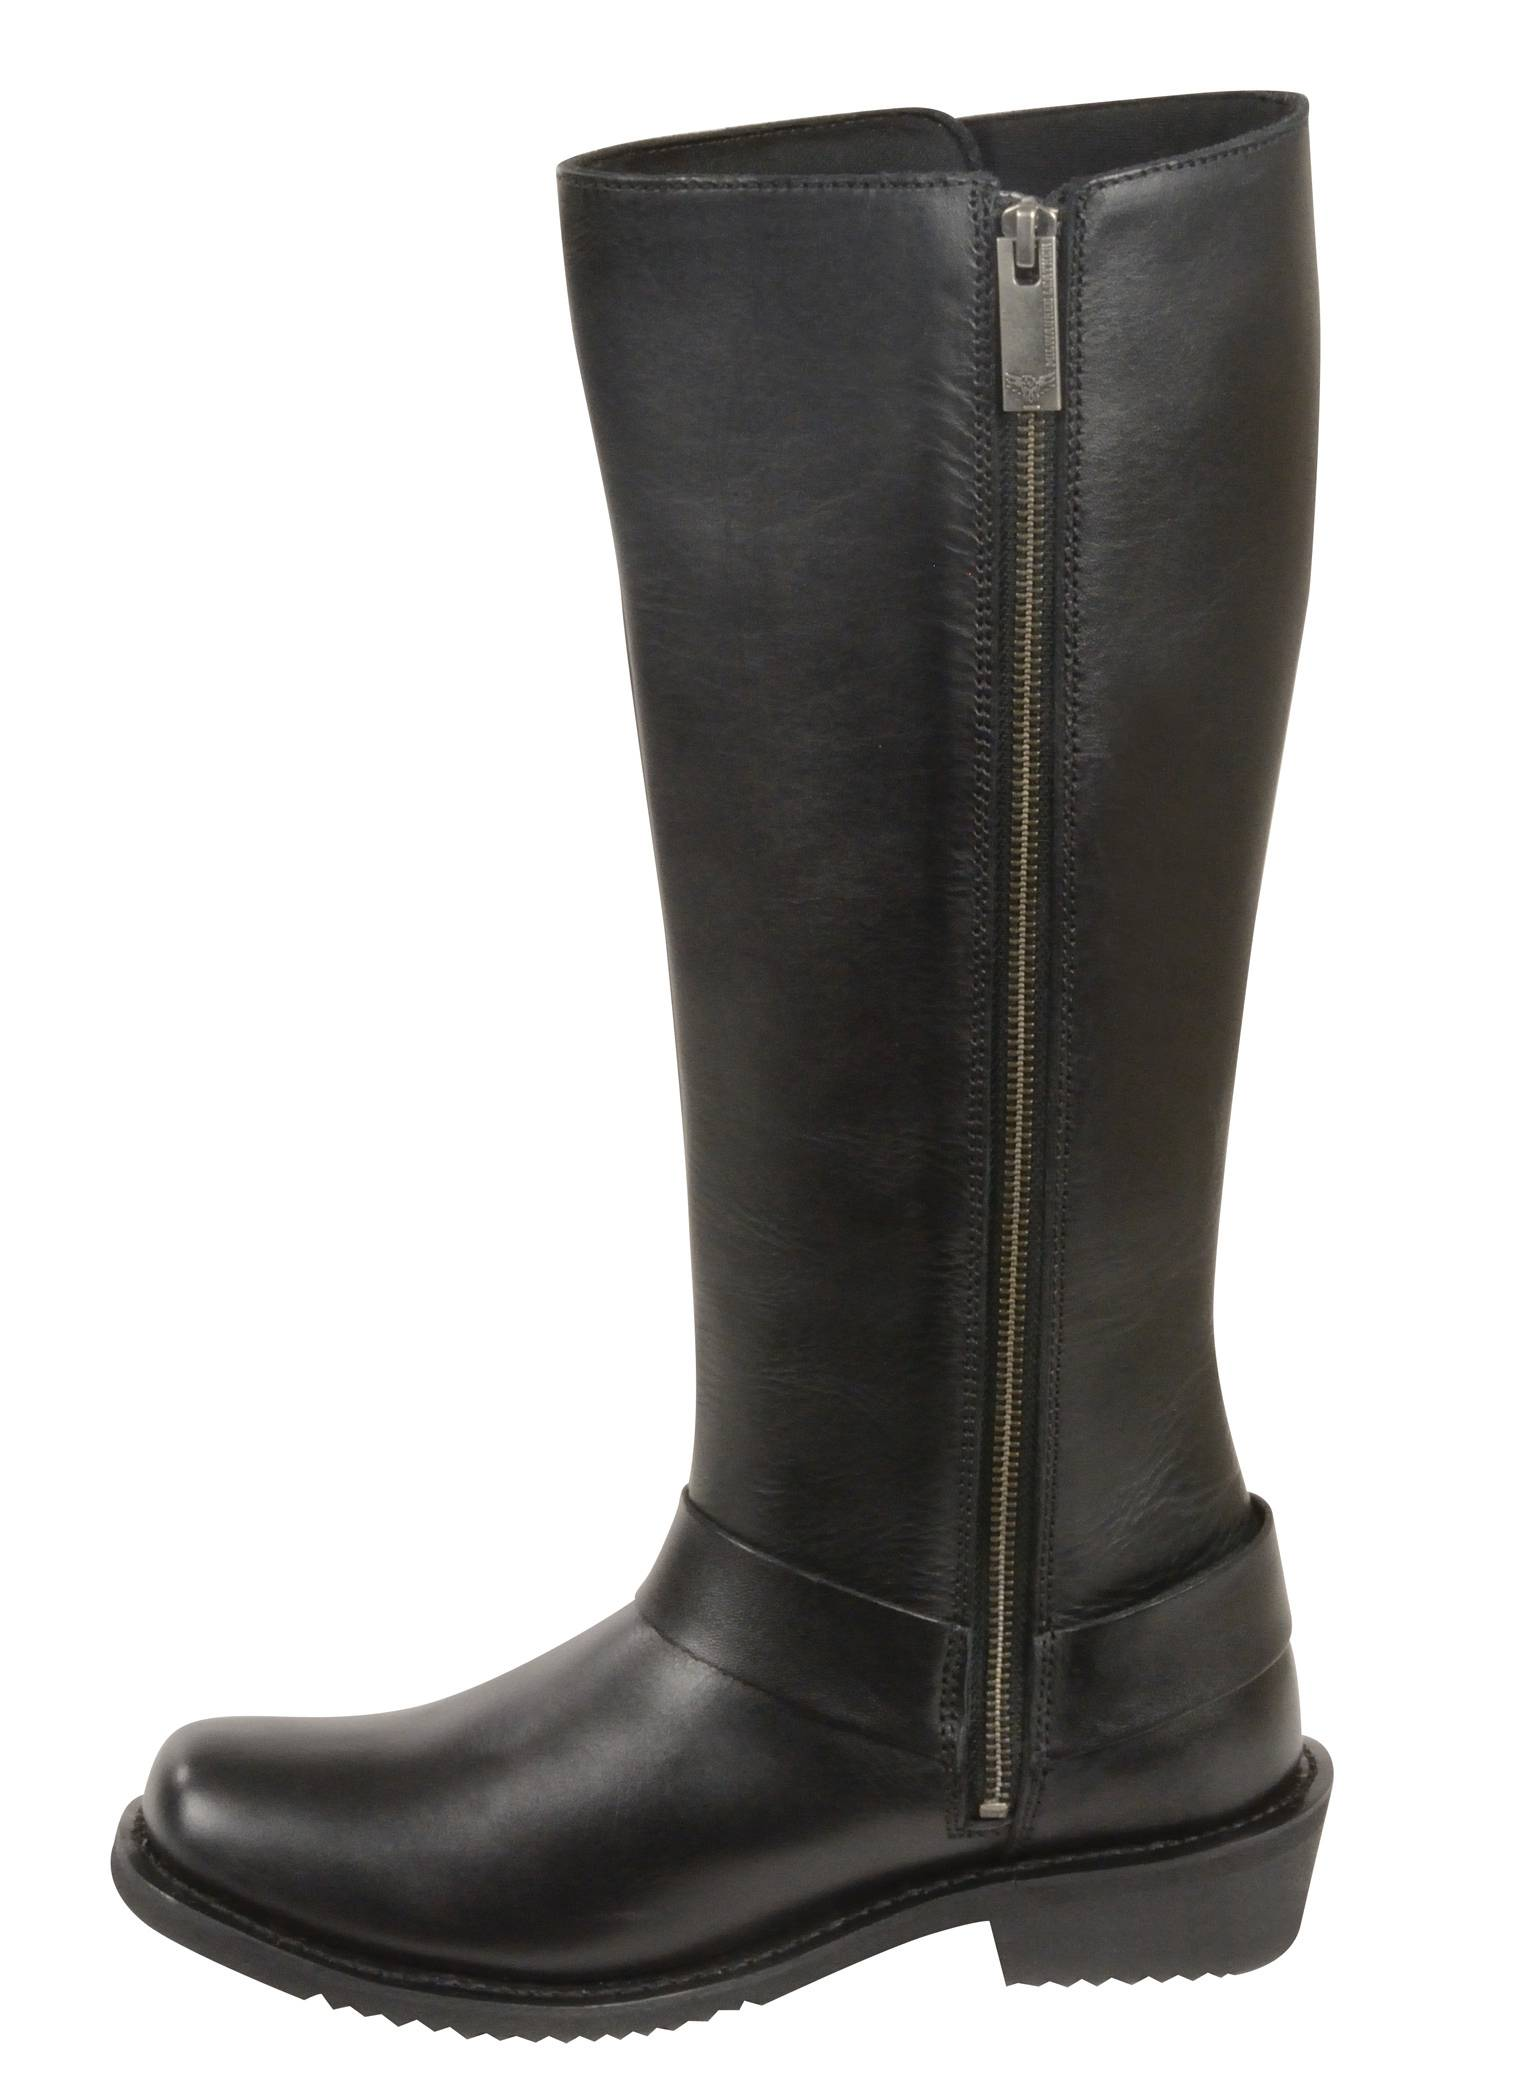 black leather 14 quot high rise boots square toe